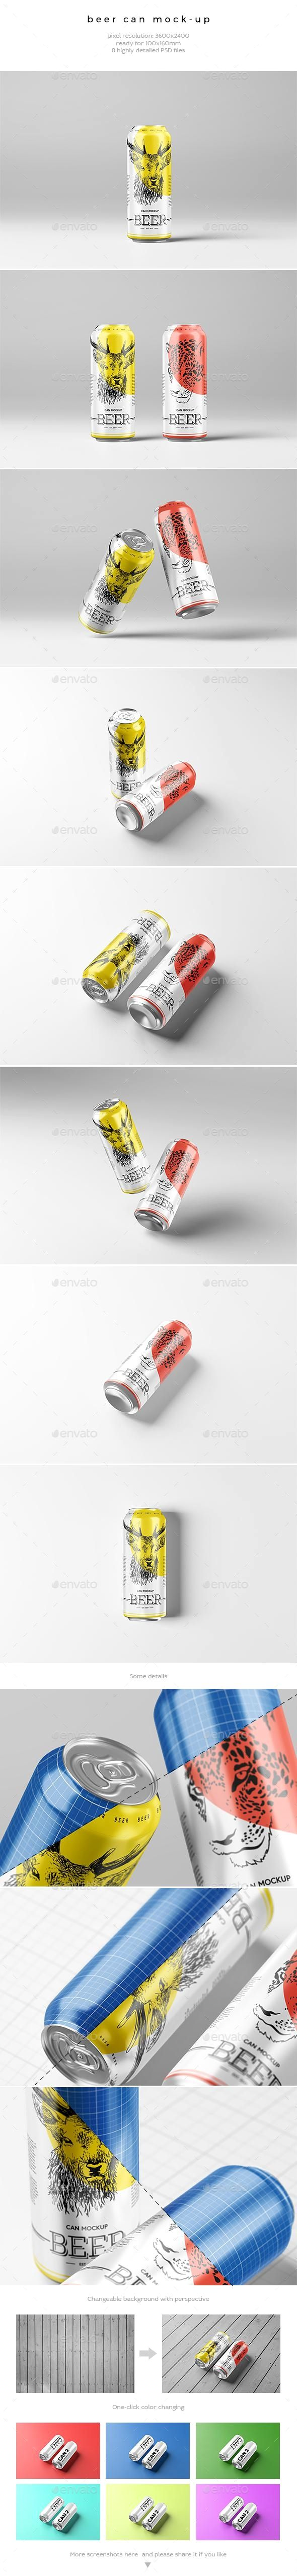 beer can mock up mockup psd template graphicriver